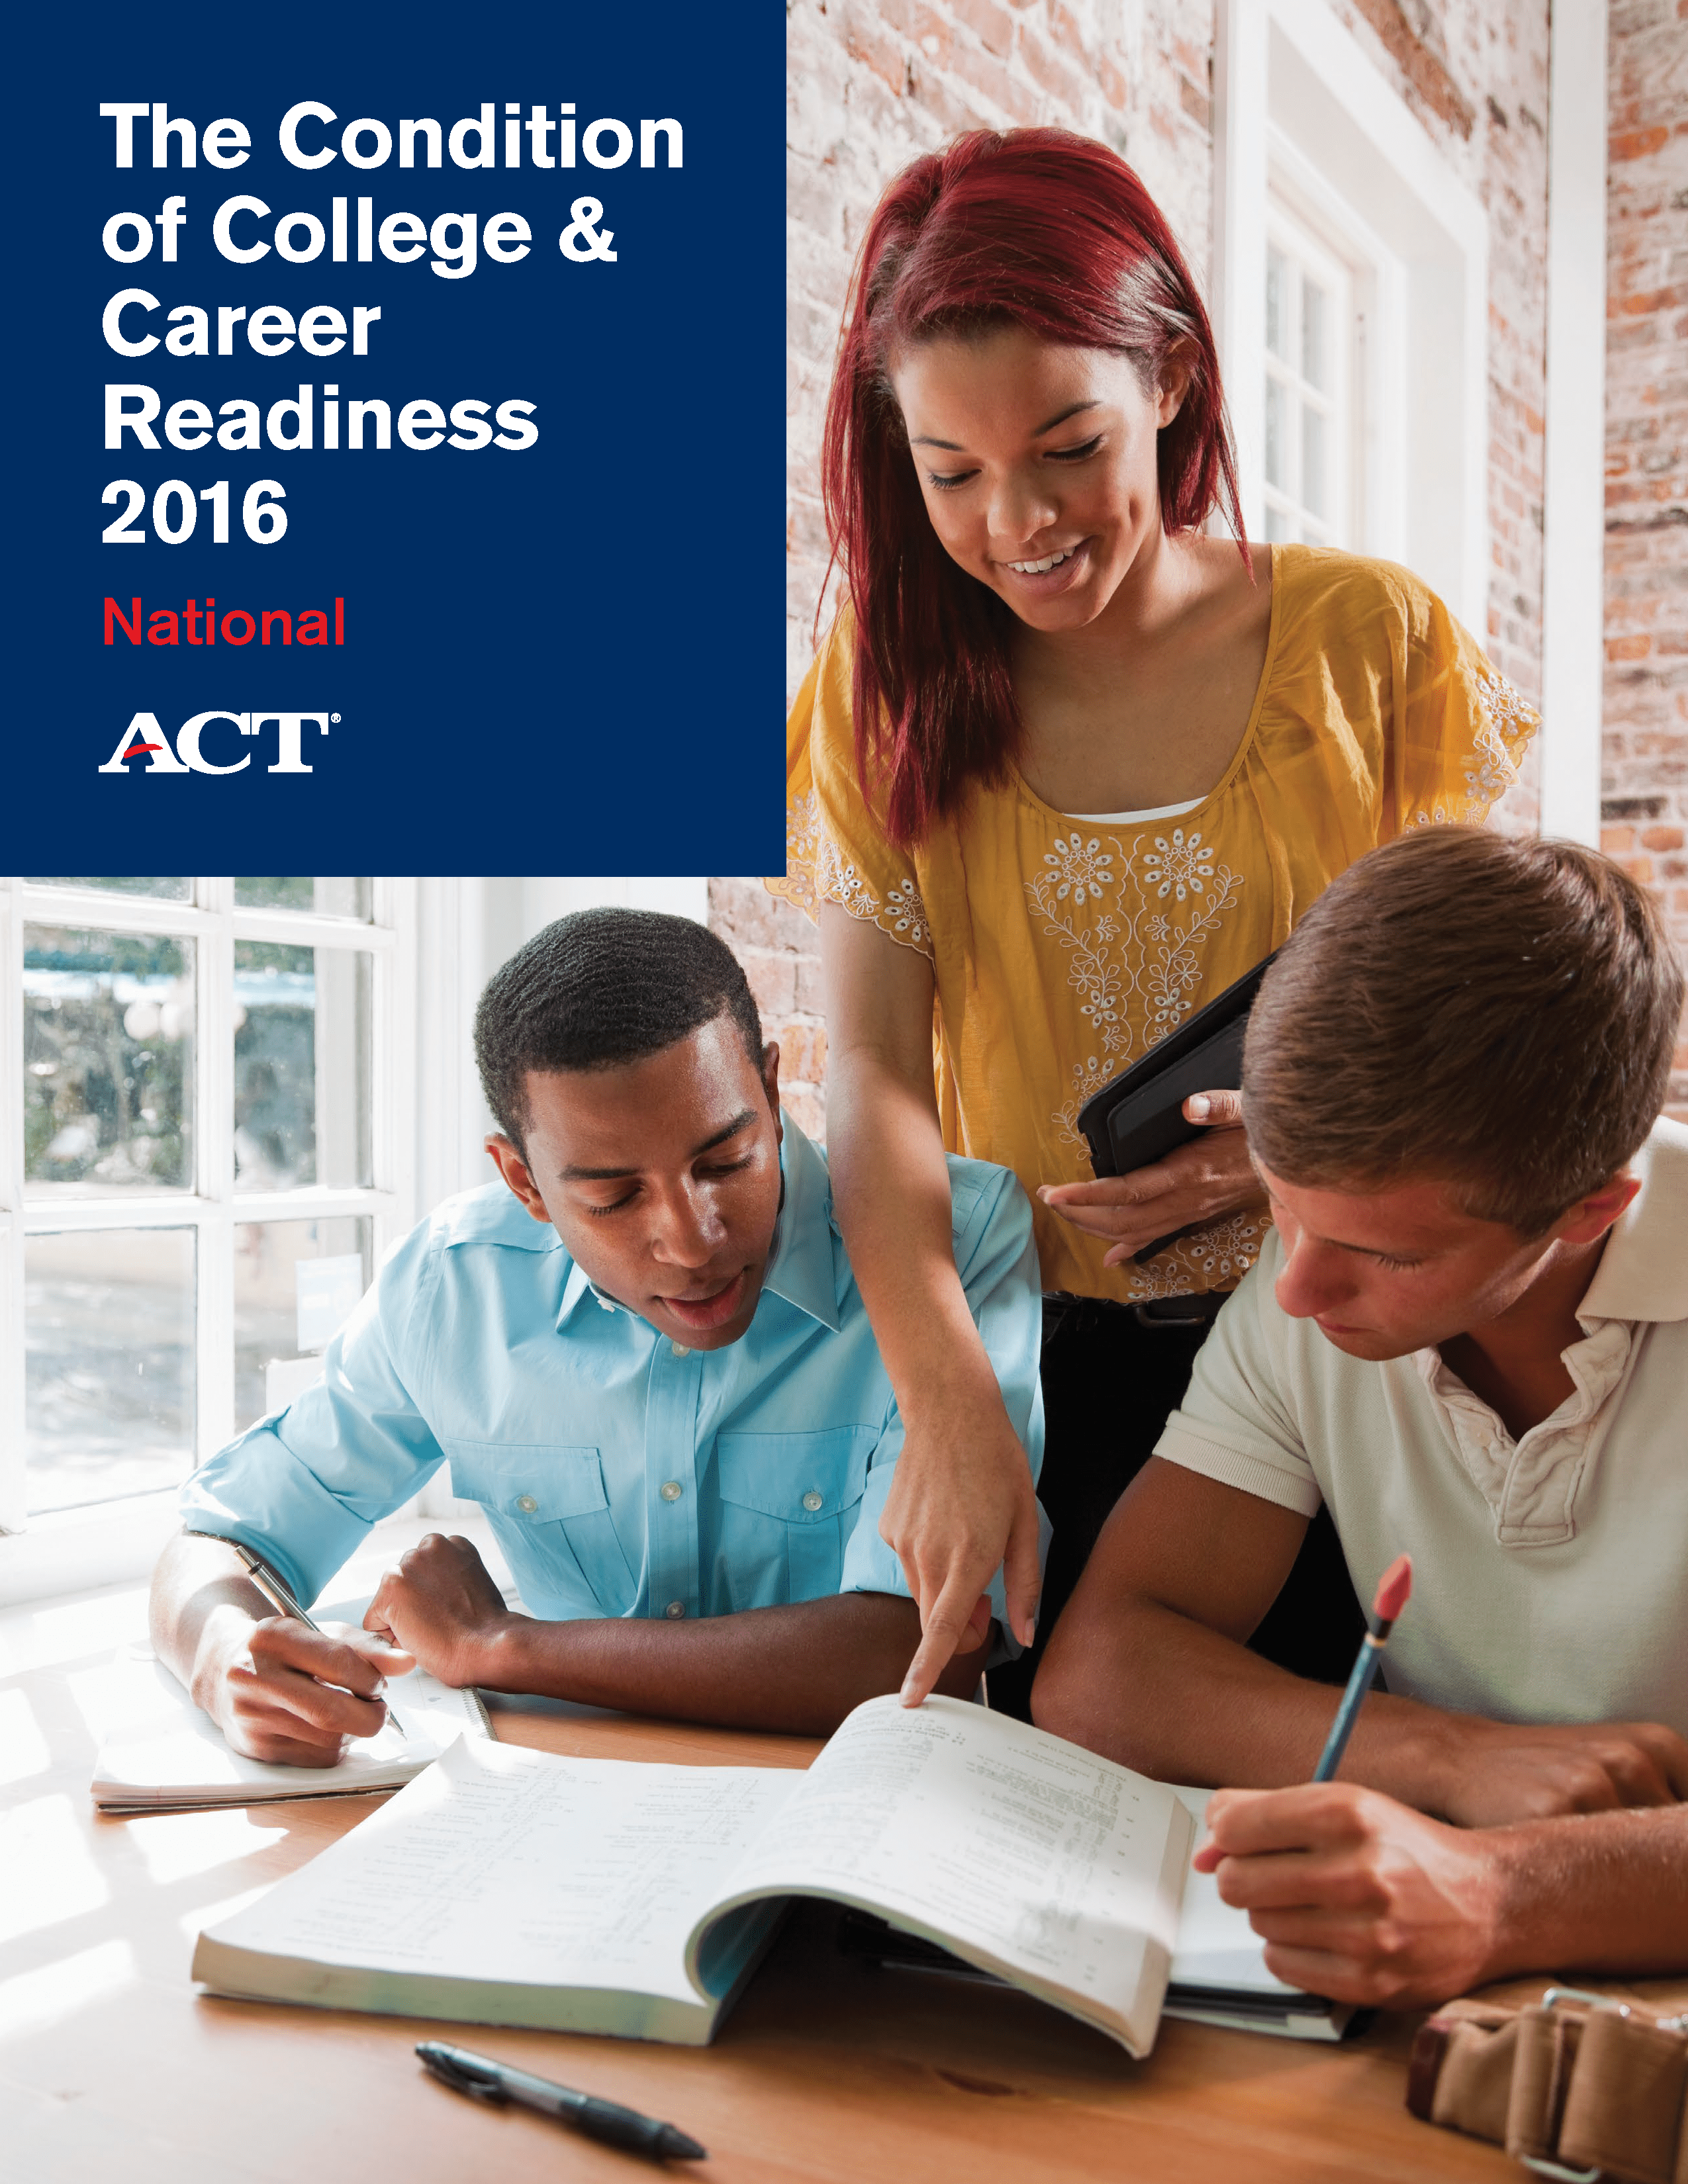 The Condition of College & Career Readiness 2016